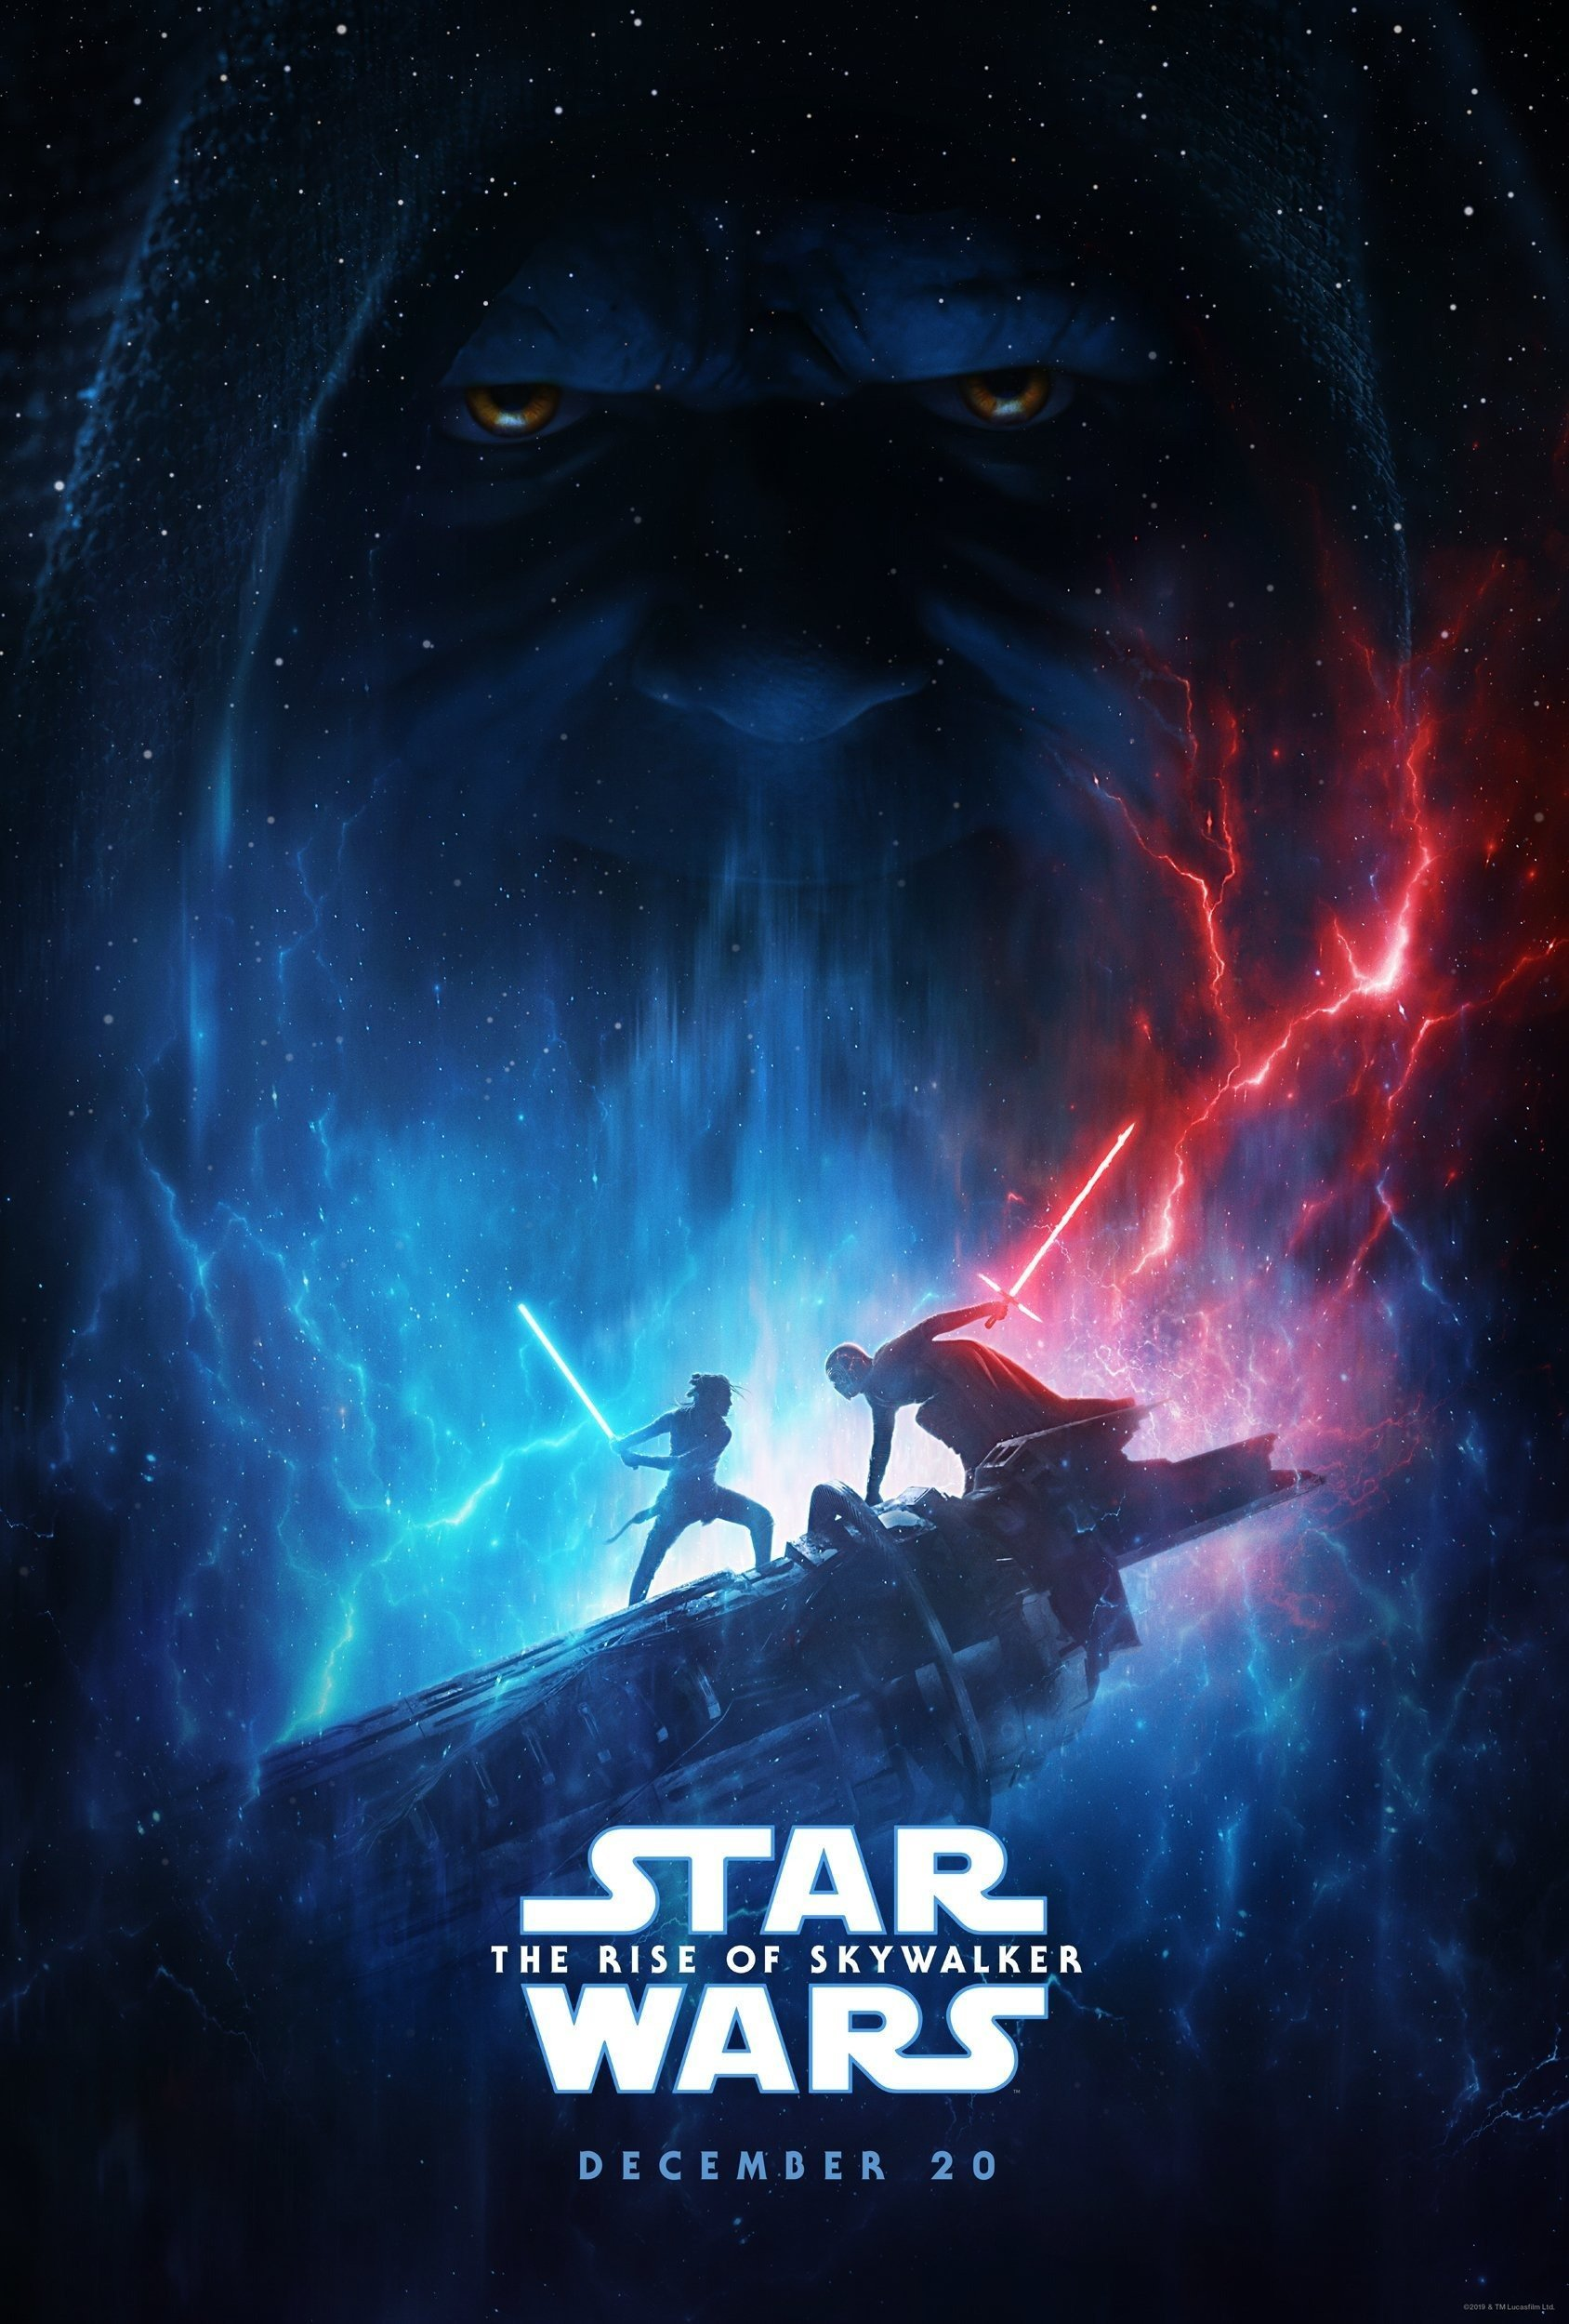 Premier poster pour le film Star Wars: L'Ascension de Skywalker (Star Wars: The Rise of Skywalker en VO) avec Rey, Kylo Ren et l'Empereur Palpatine